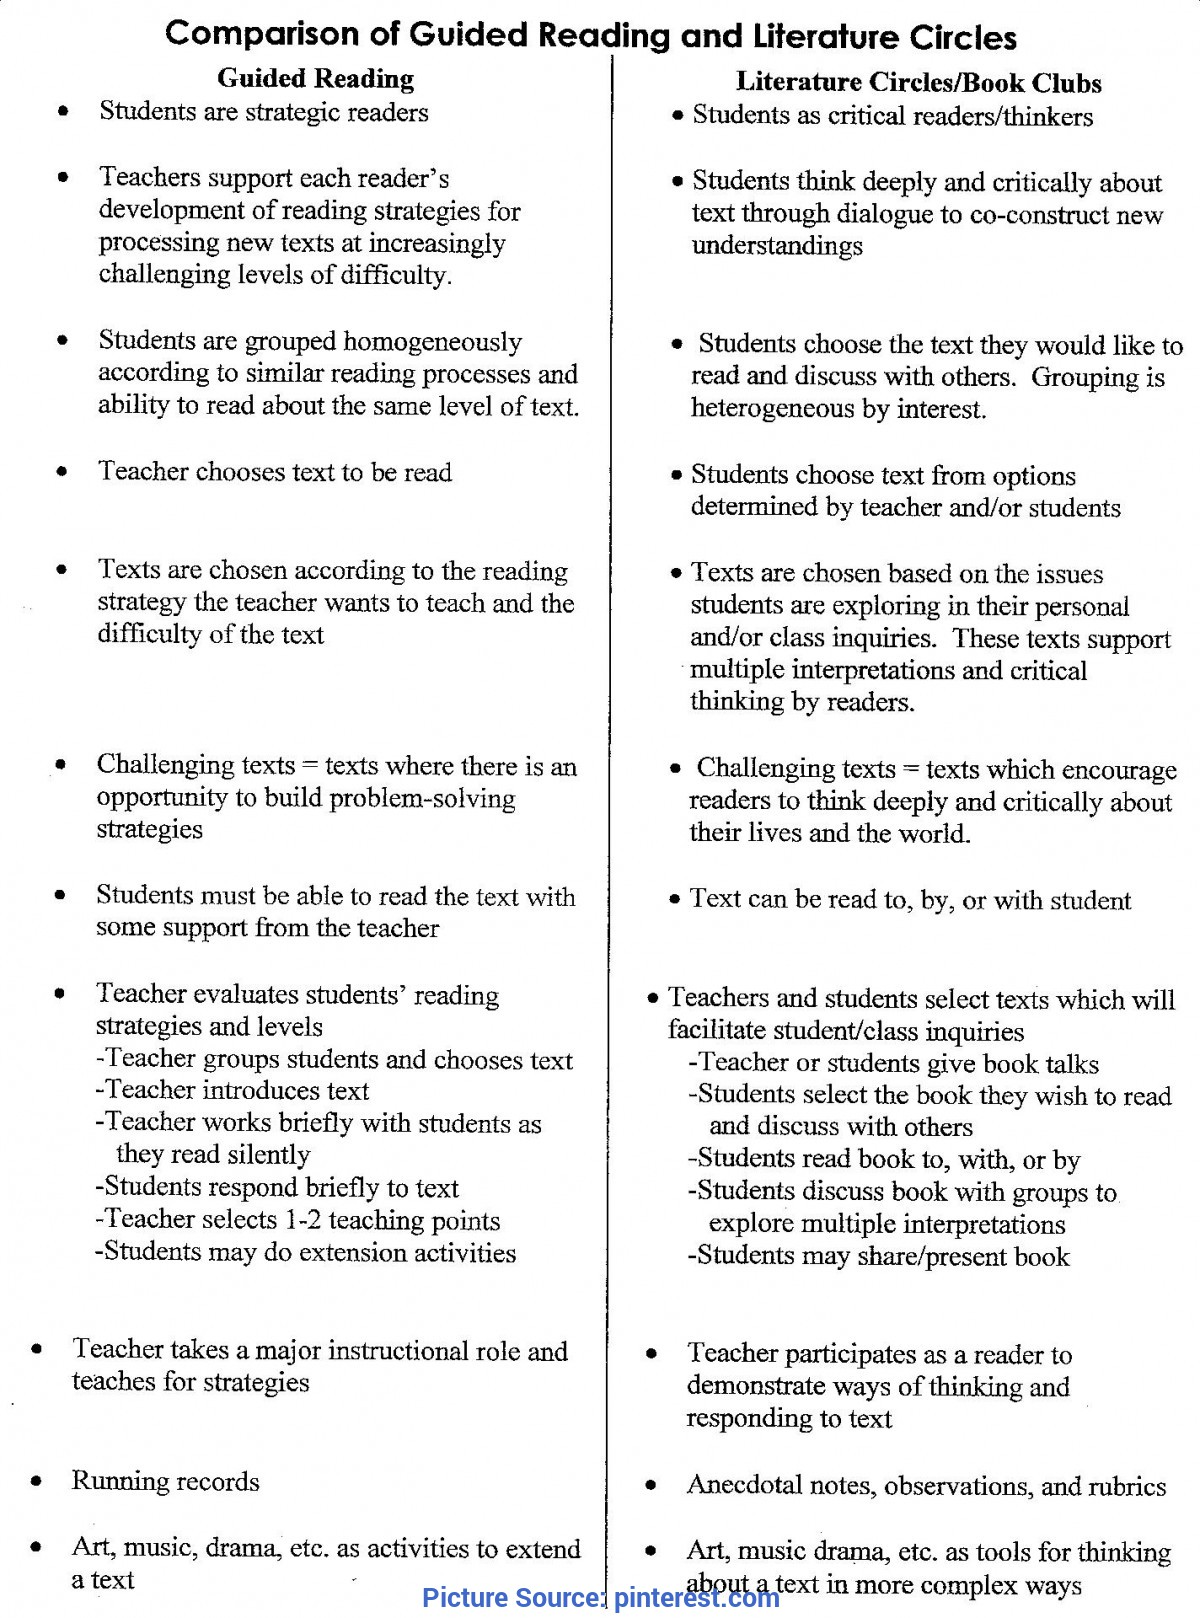 Best 5Th Grade Guided Reading Lesson Plans Guided Reading | Guided_Reading_-_Literature_Circles.Jp